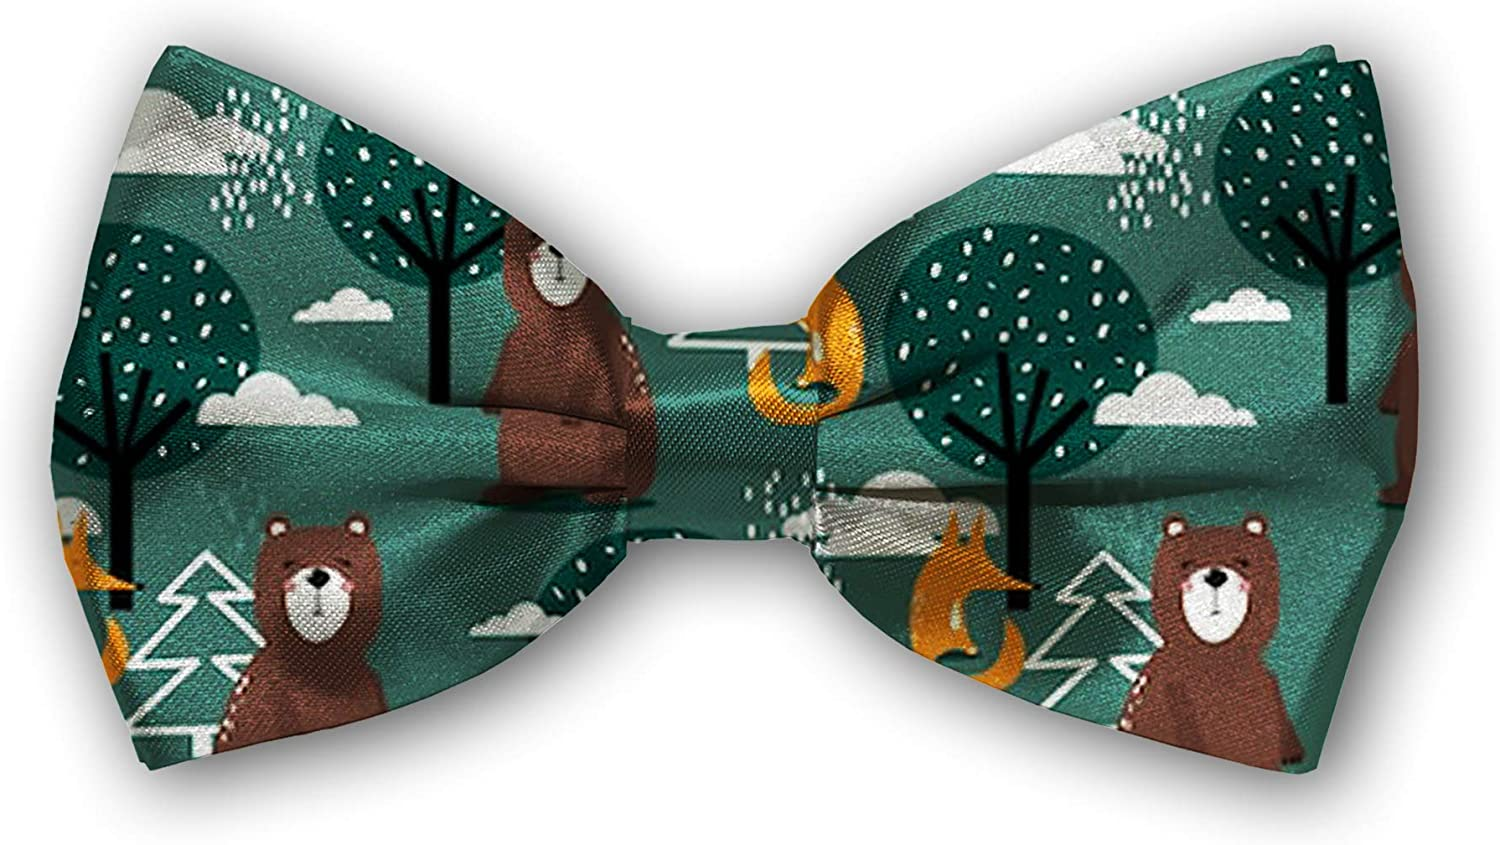 We OFFer at cheap prices Bow Tie Tuxedo Butterfly Cotton Adjustable Mens Challenge the lowest price Boys Bowtie for